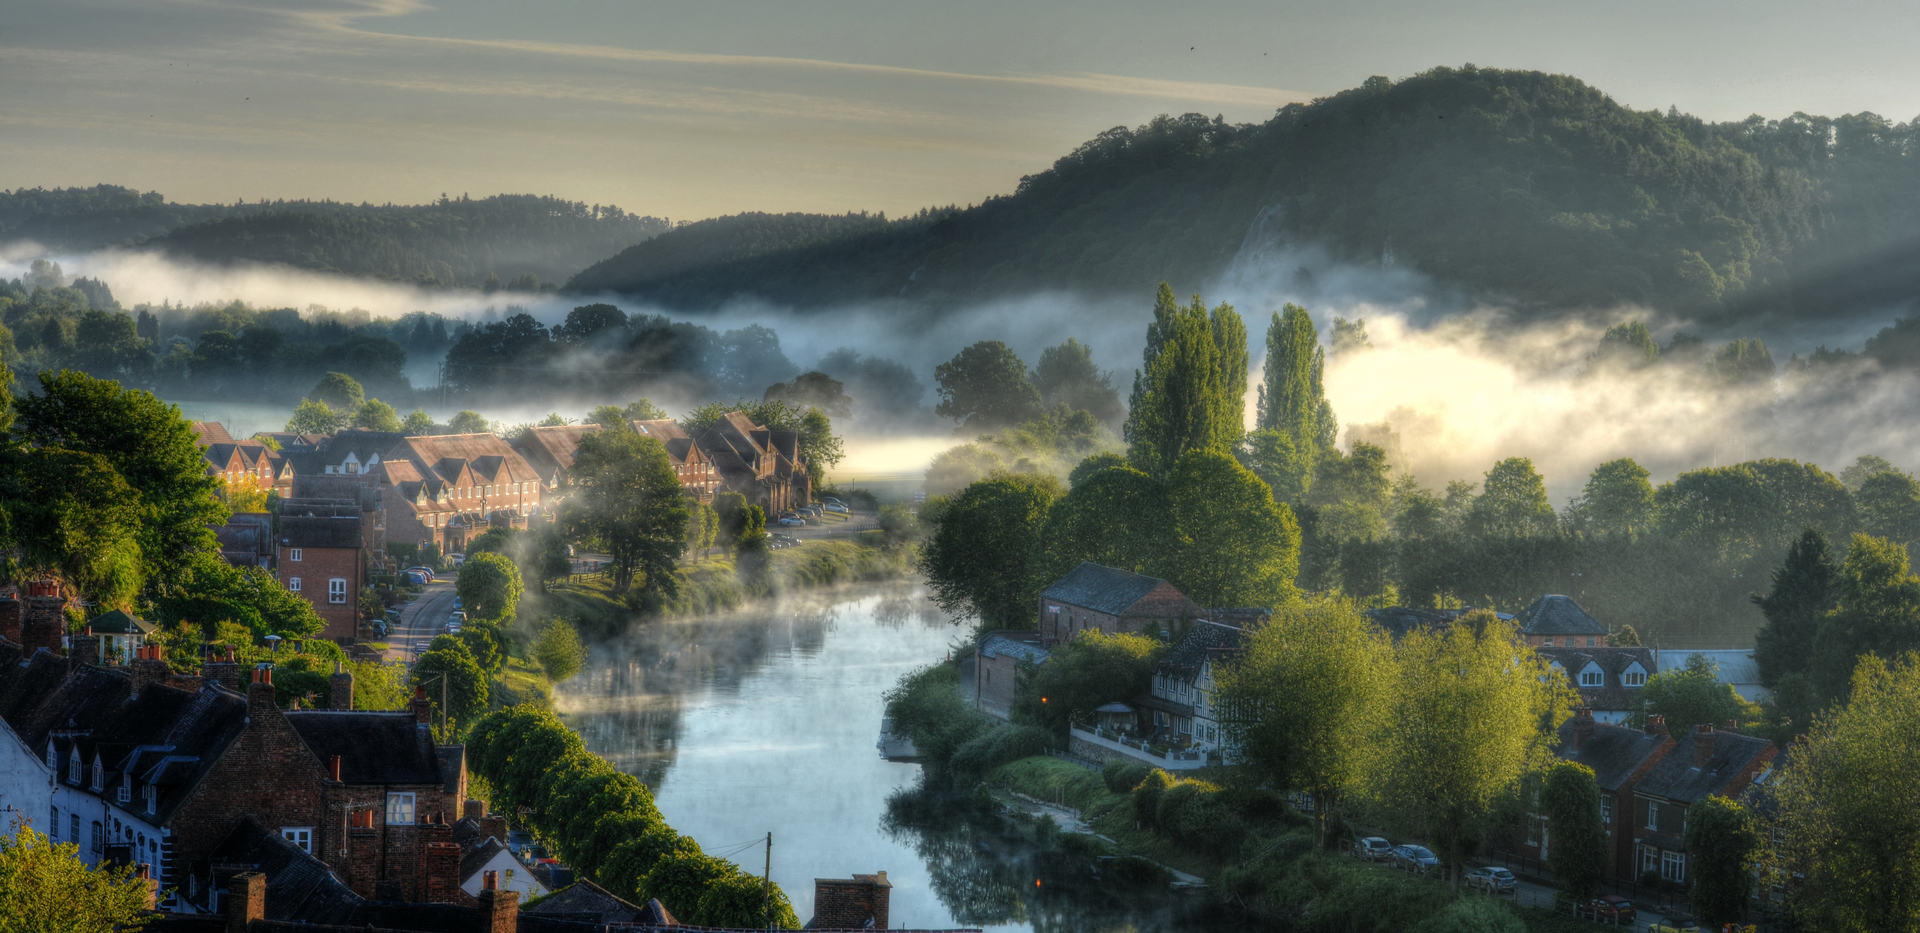 (c) Olwyn Wall: Misty morning on the Severn (joint runner up)